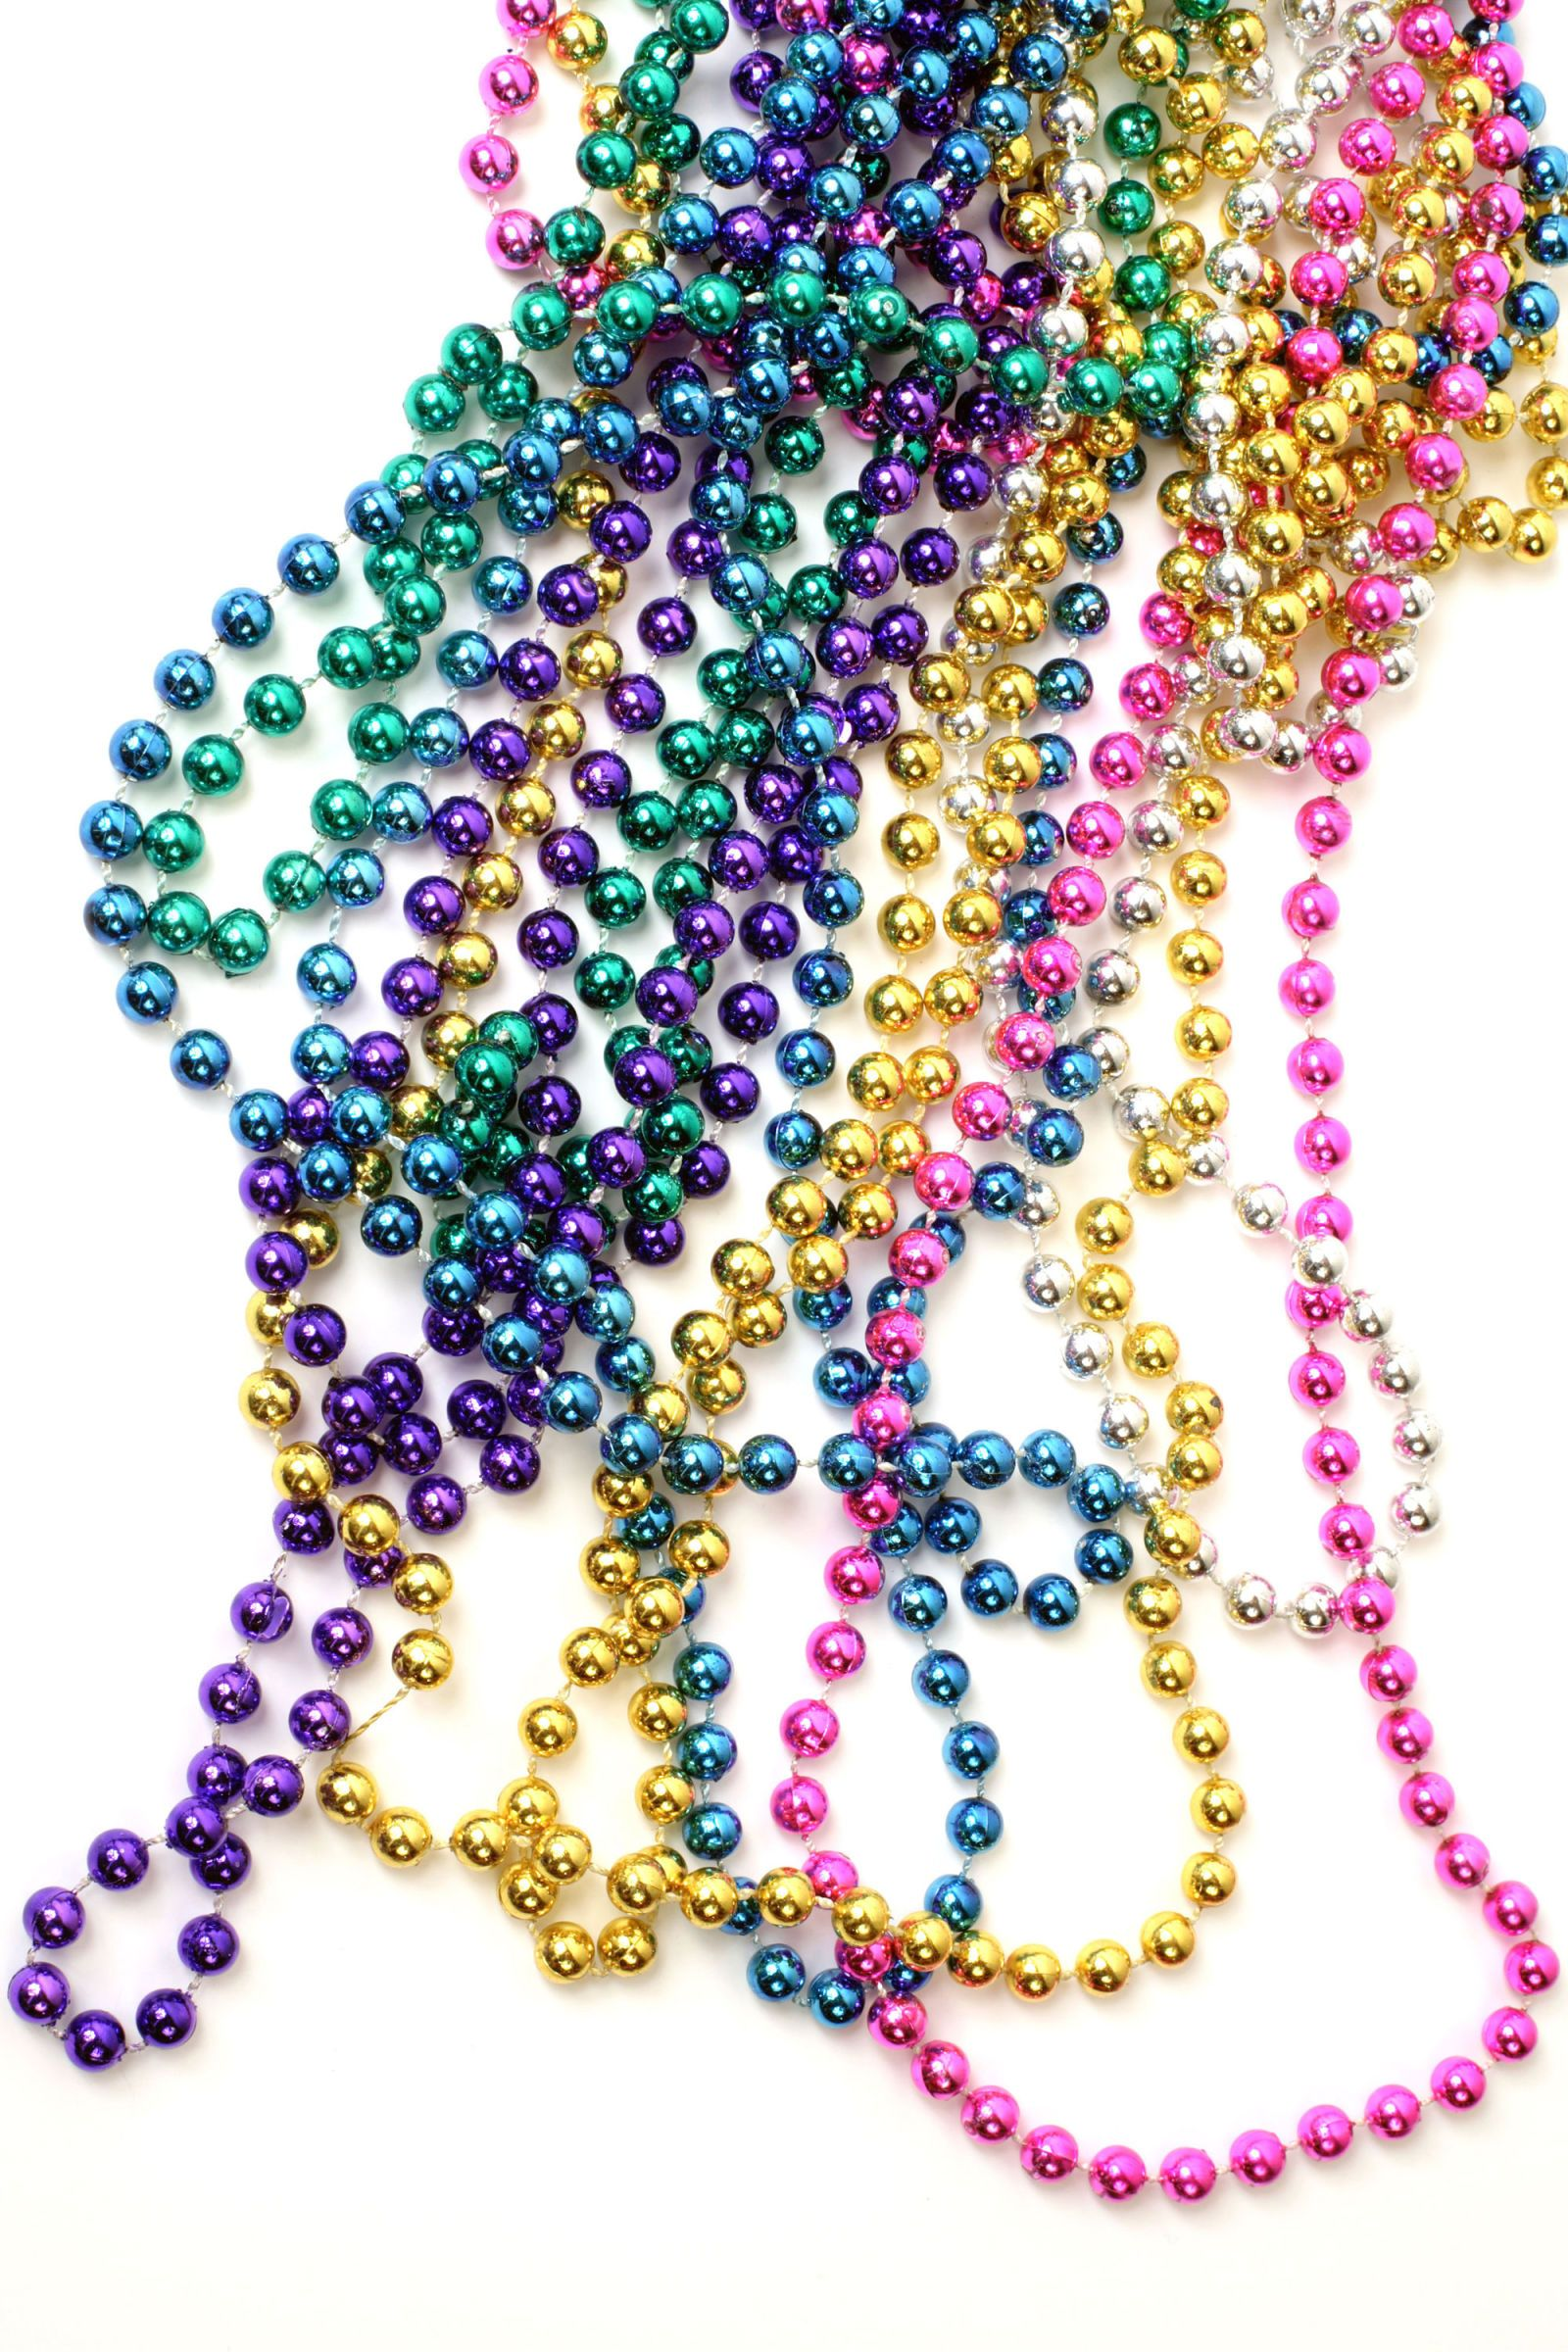 The 10 Most Toxic Items At Dollar Stores Dollar Stores Mardi Gras Beads 10 Things